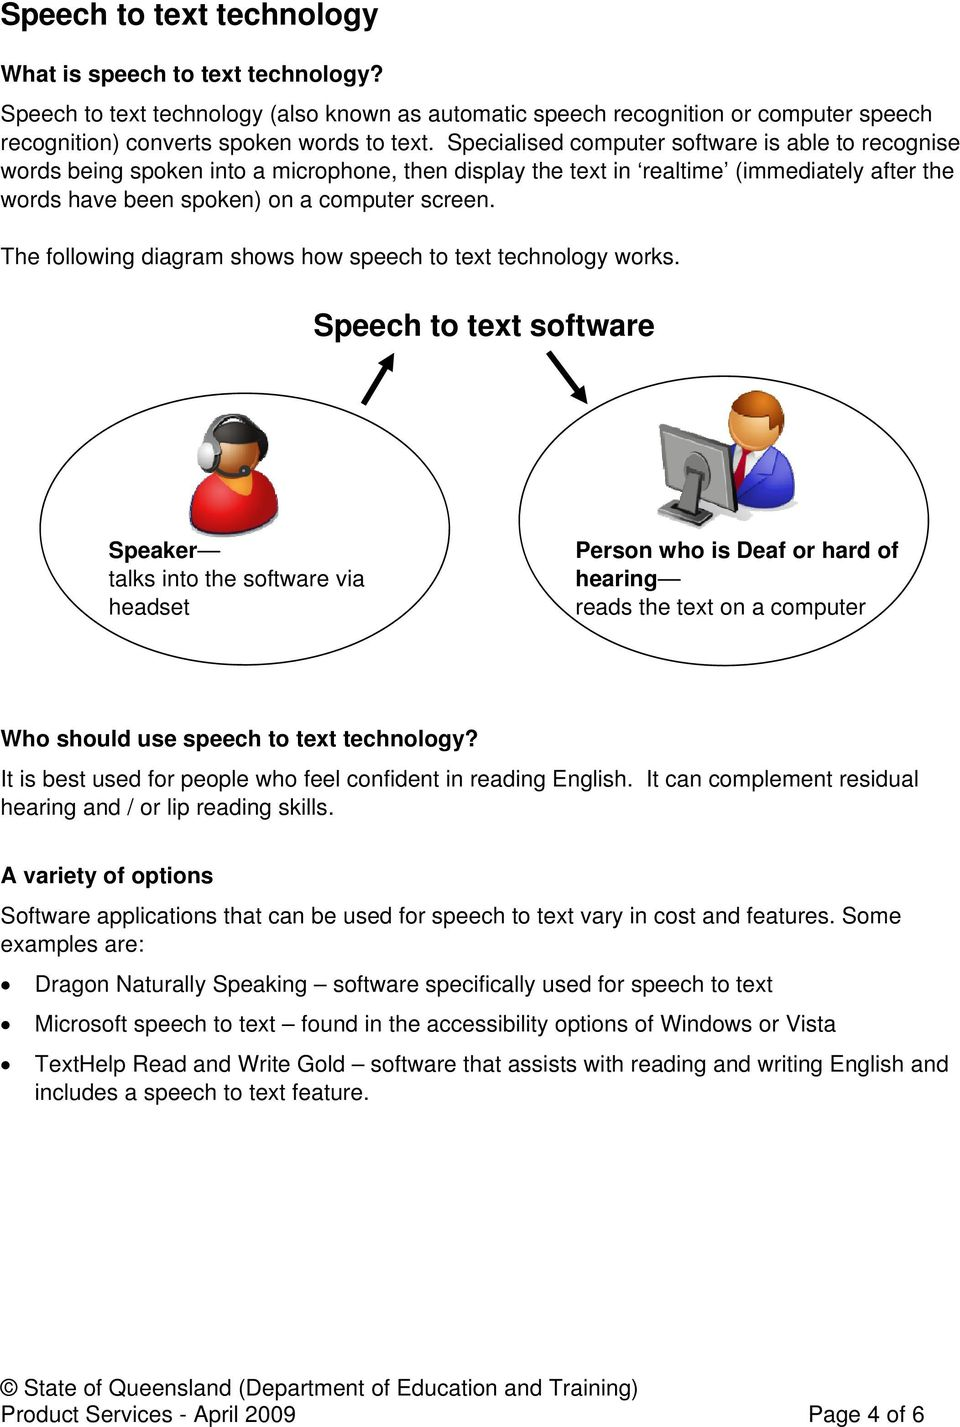 The following diagram shows how speech to text technology works.